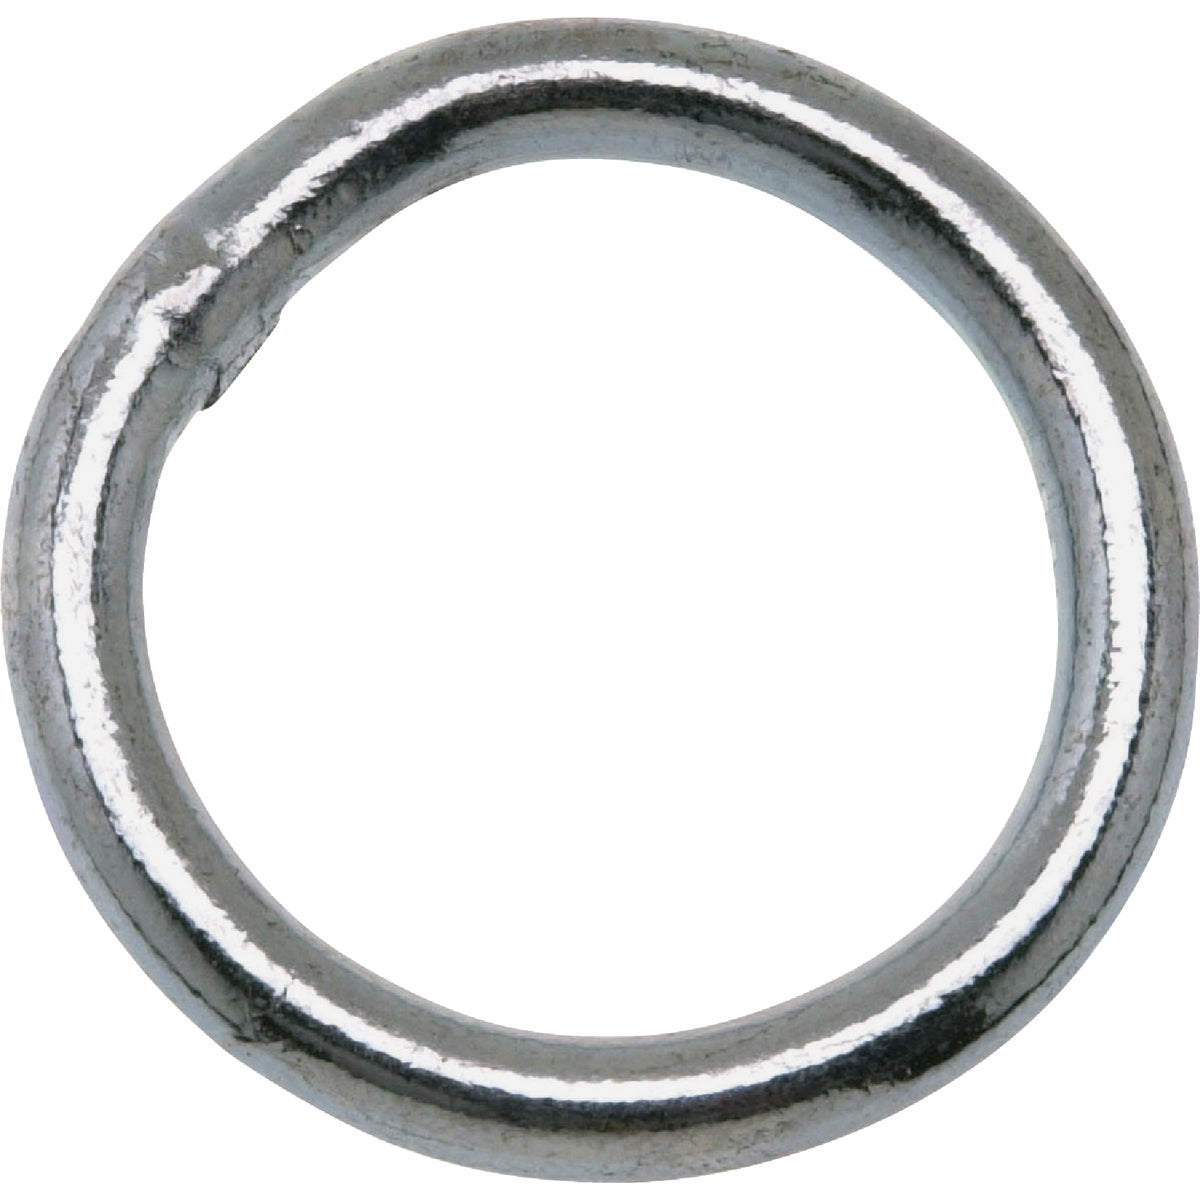 "1-1/4"" #4 ROUND RING - T7660841 by Cooper Campbell Apex"